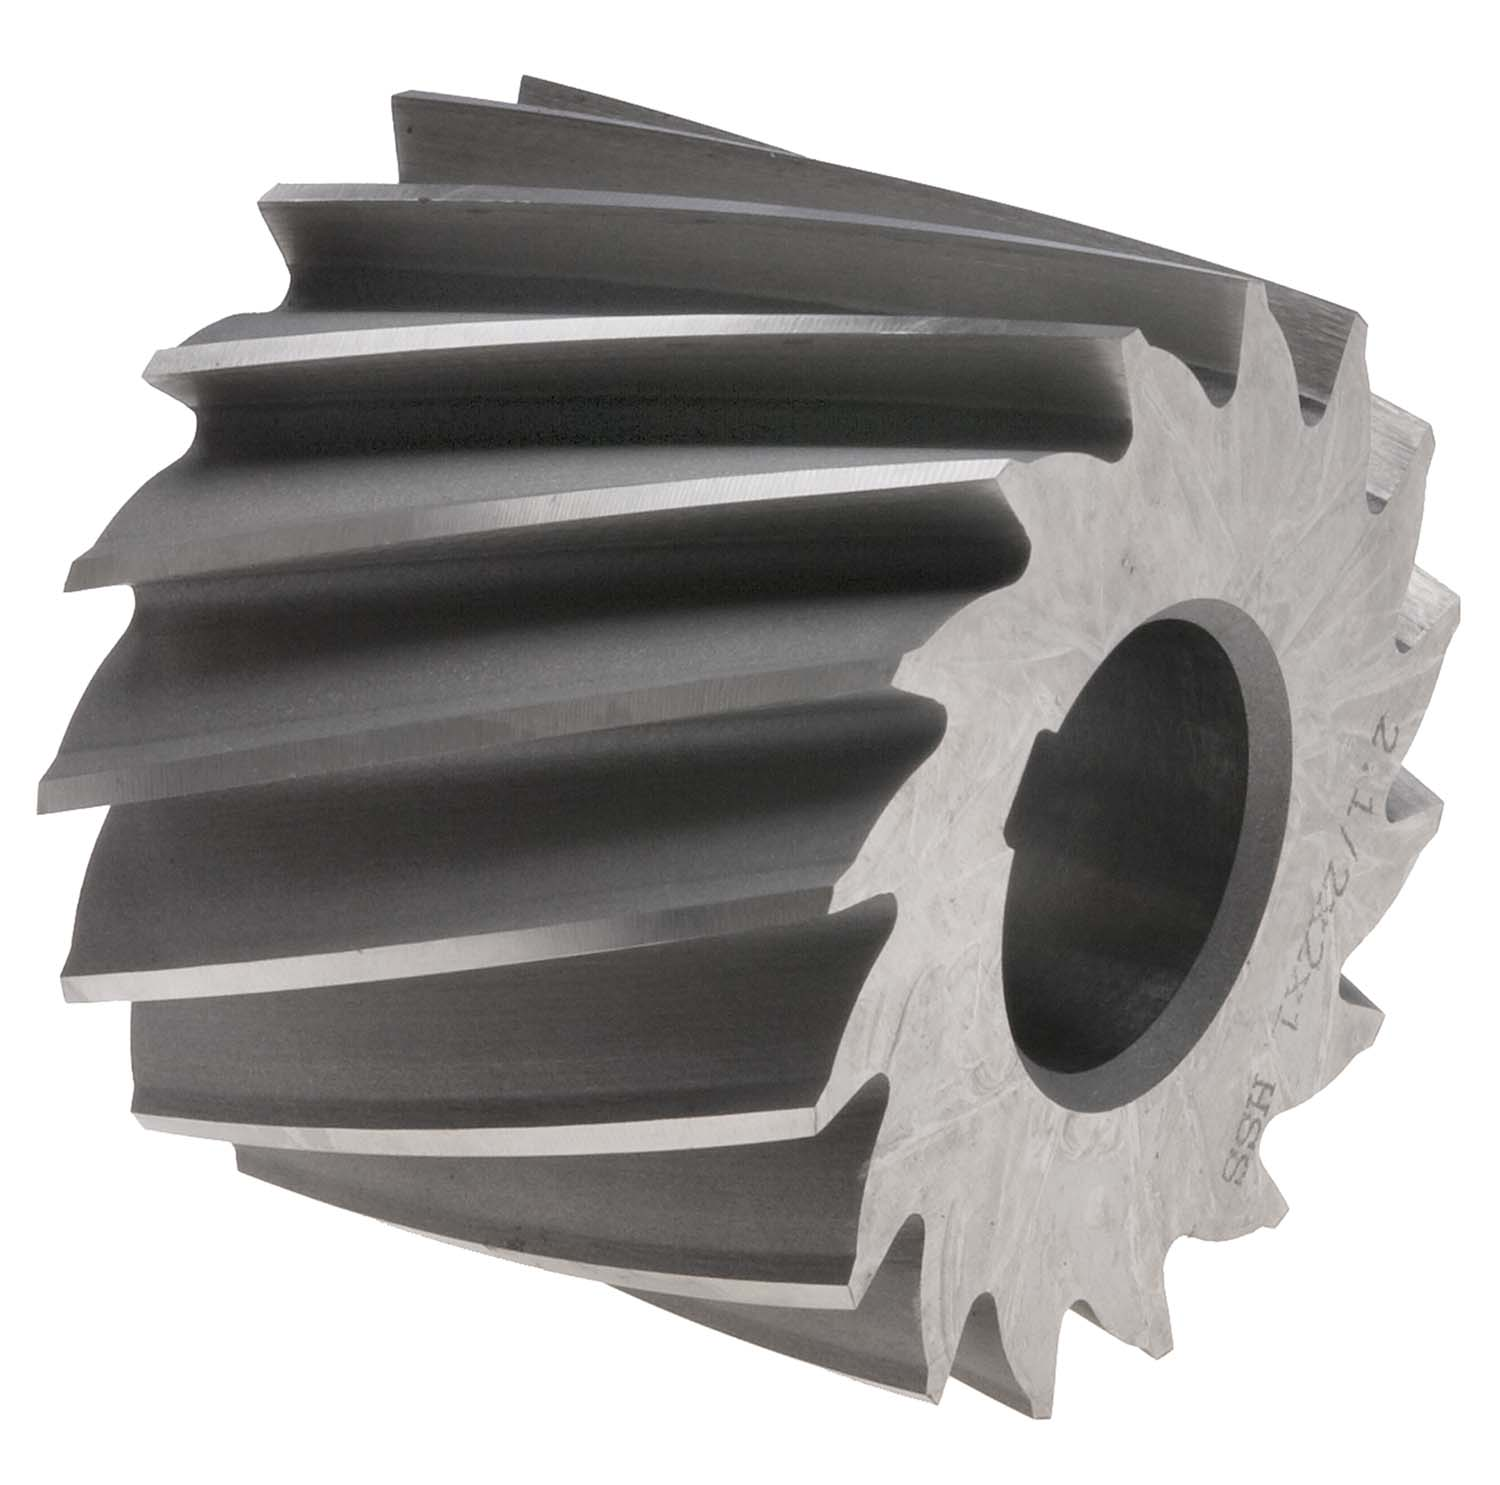 4 X 5/16 X 1-1/4 Plain Milling Cutter, High Speed Steel